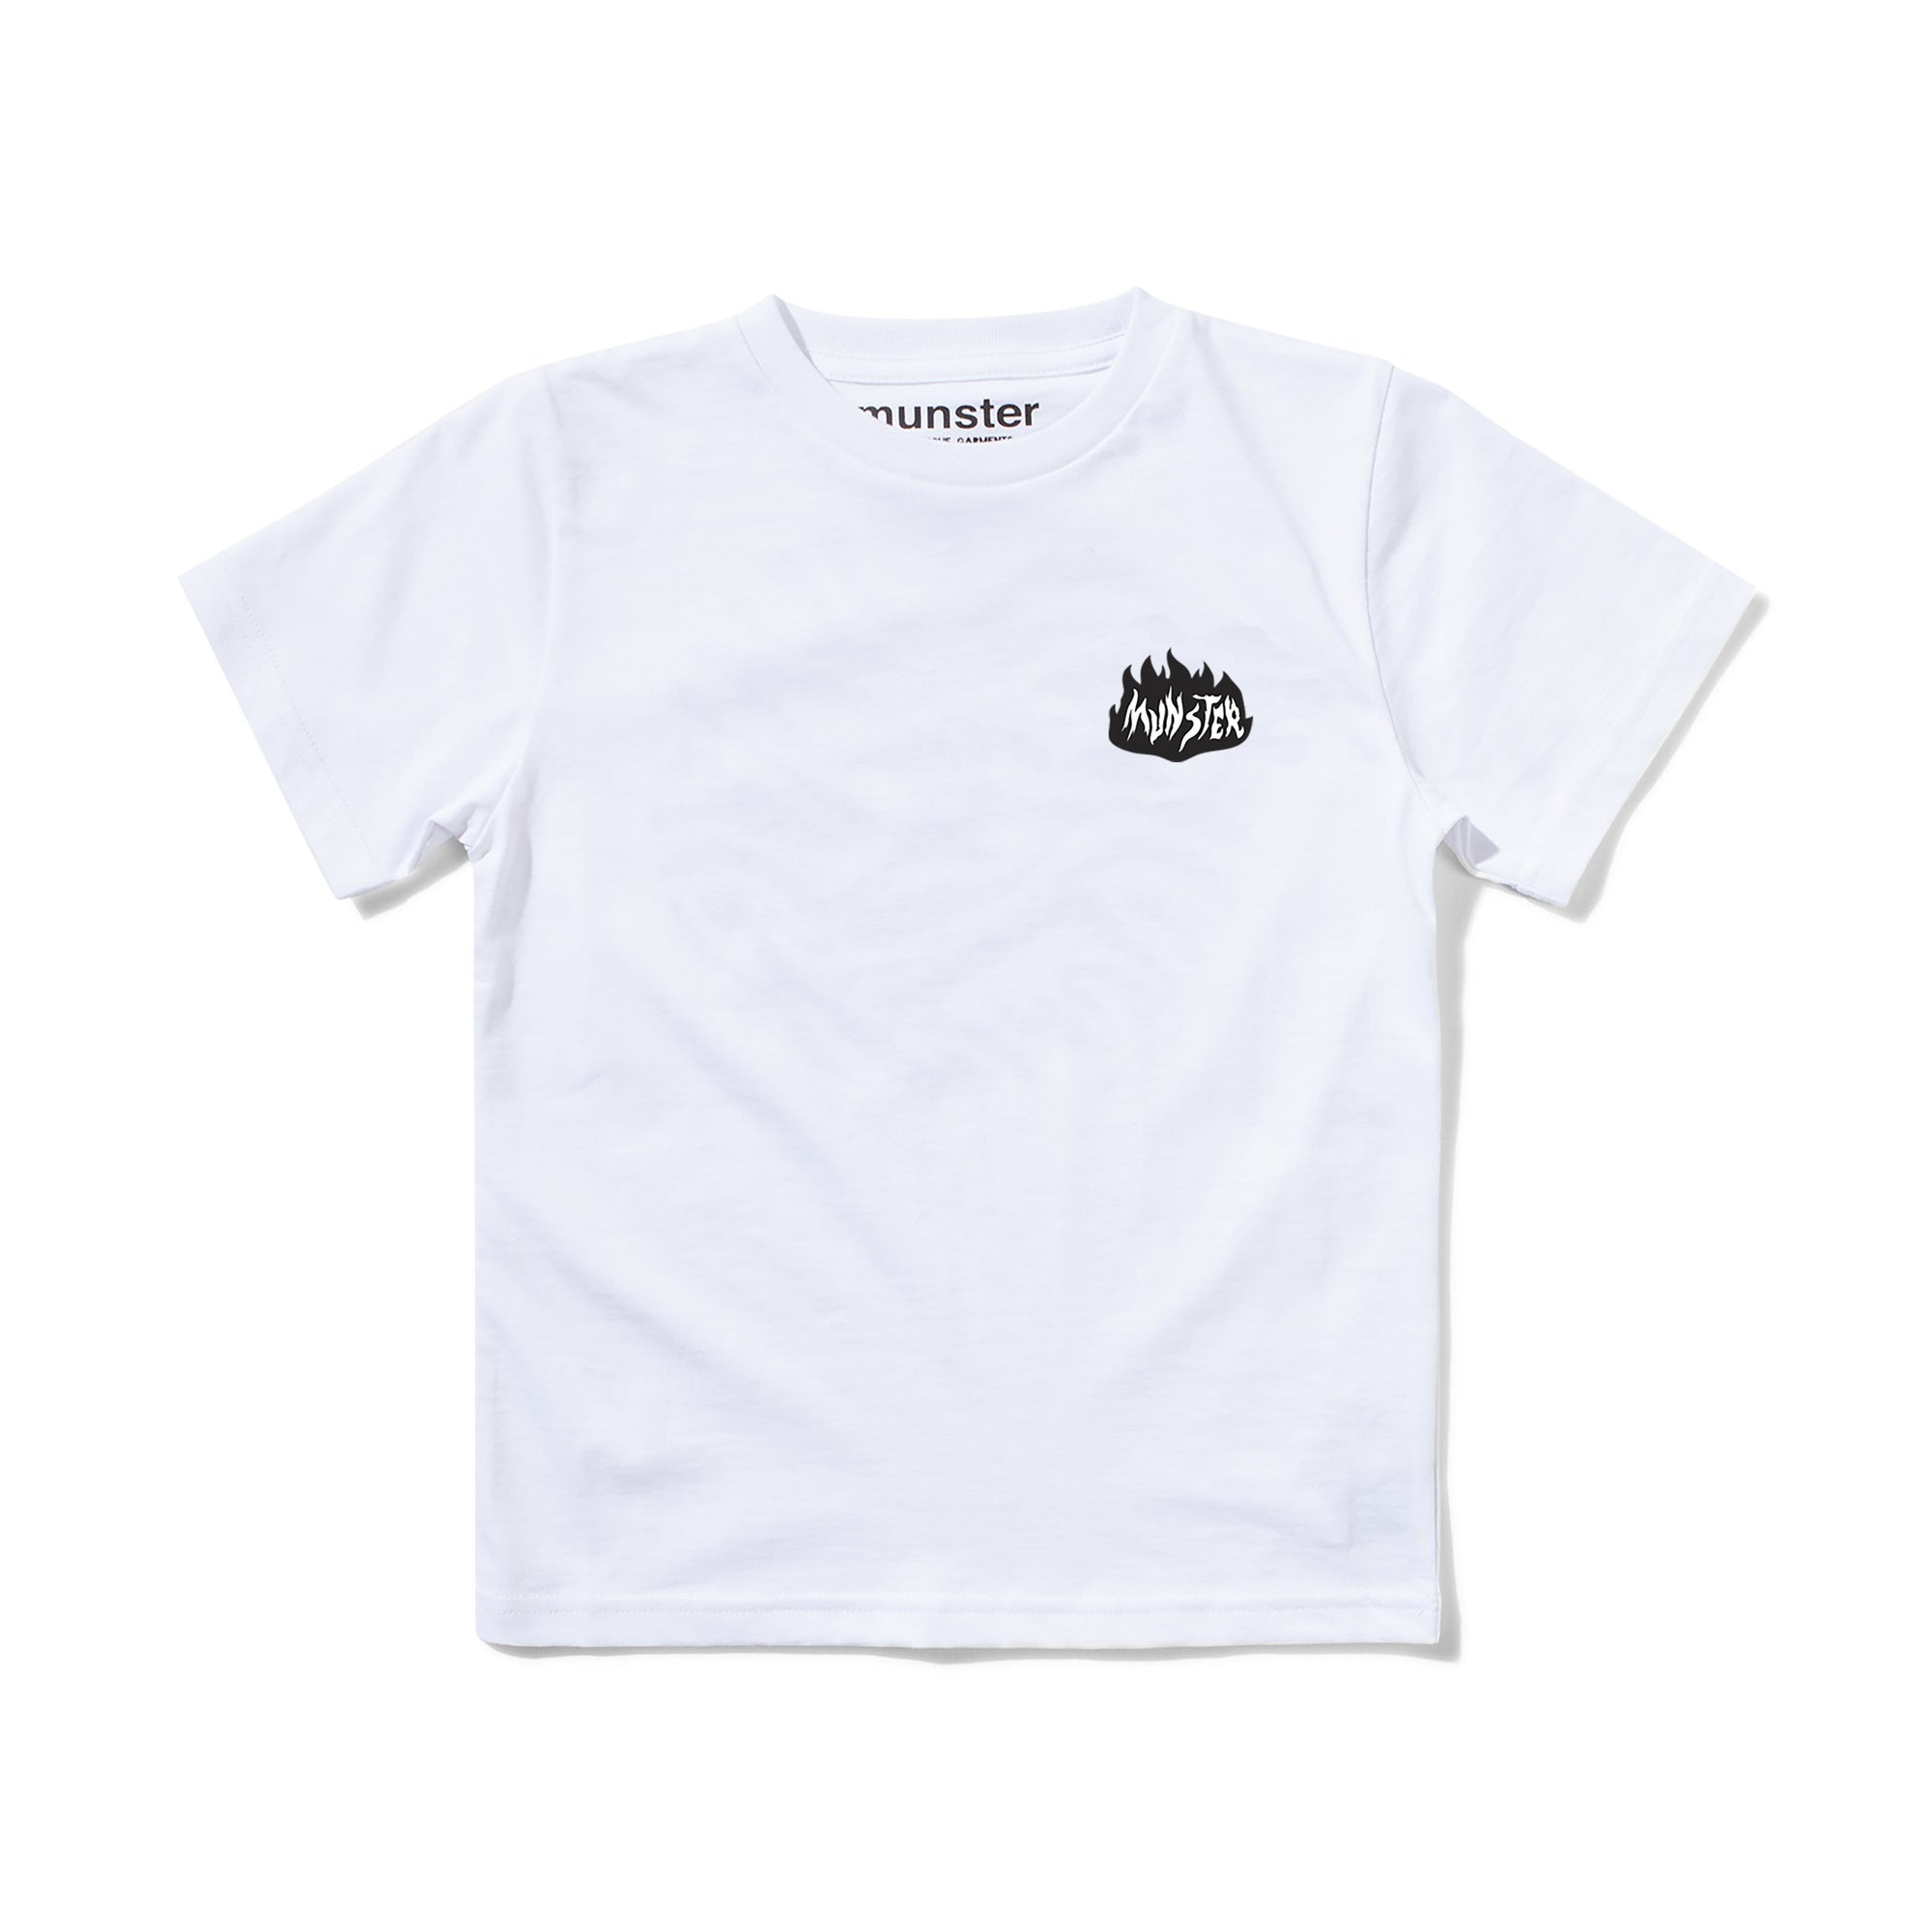 Munster Kids On Fire Tee White